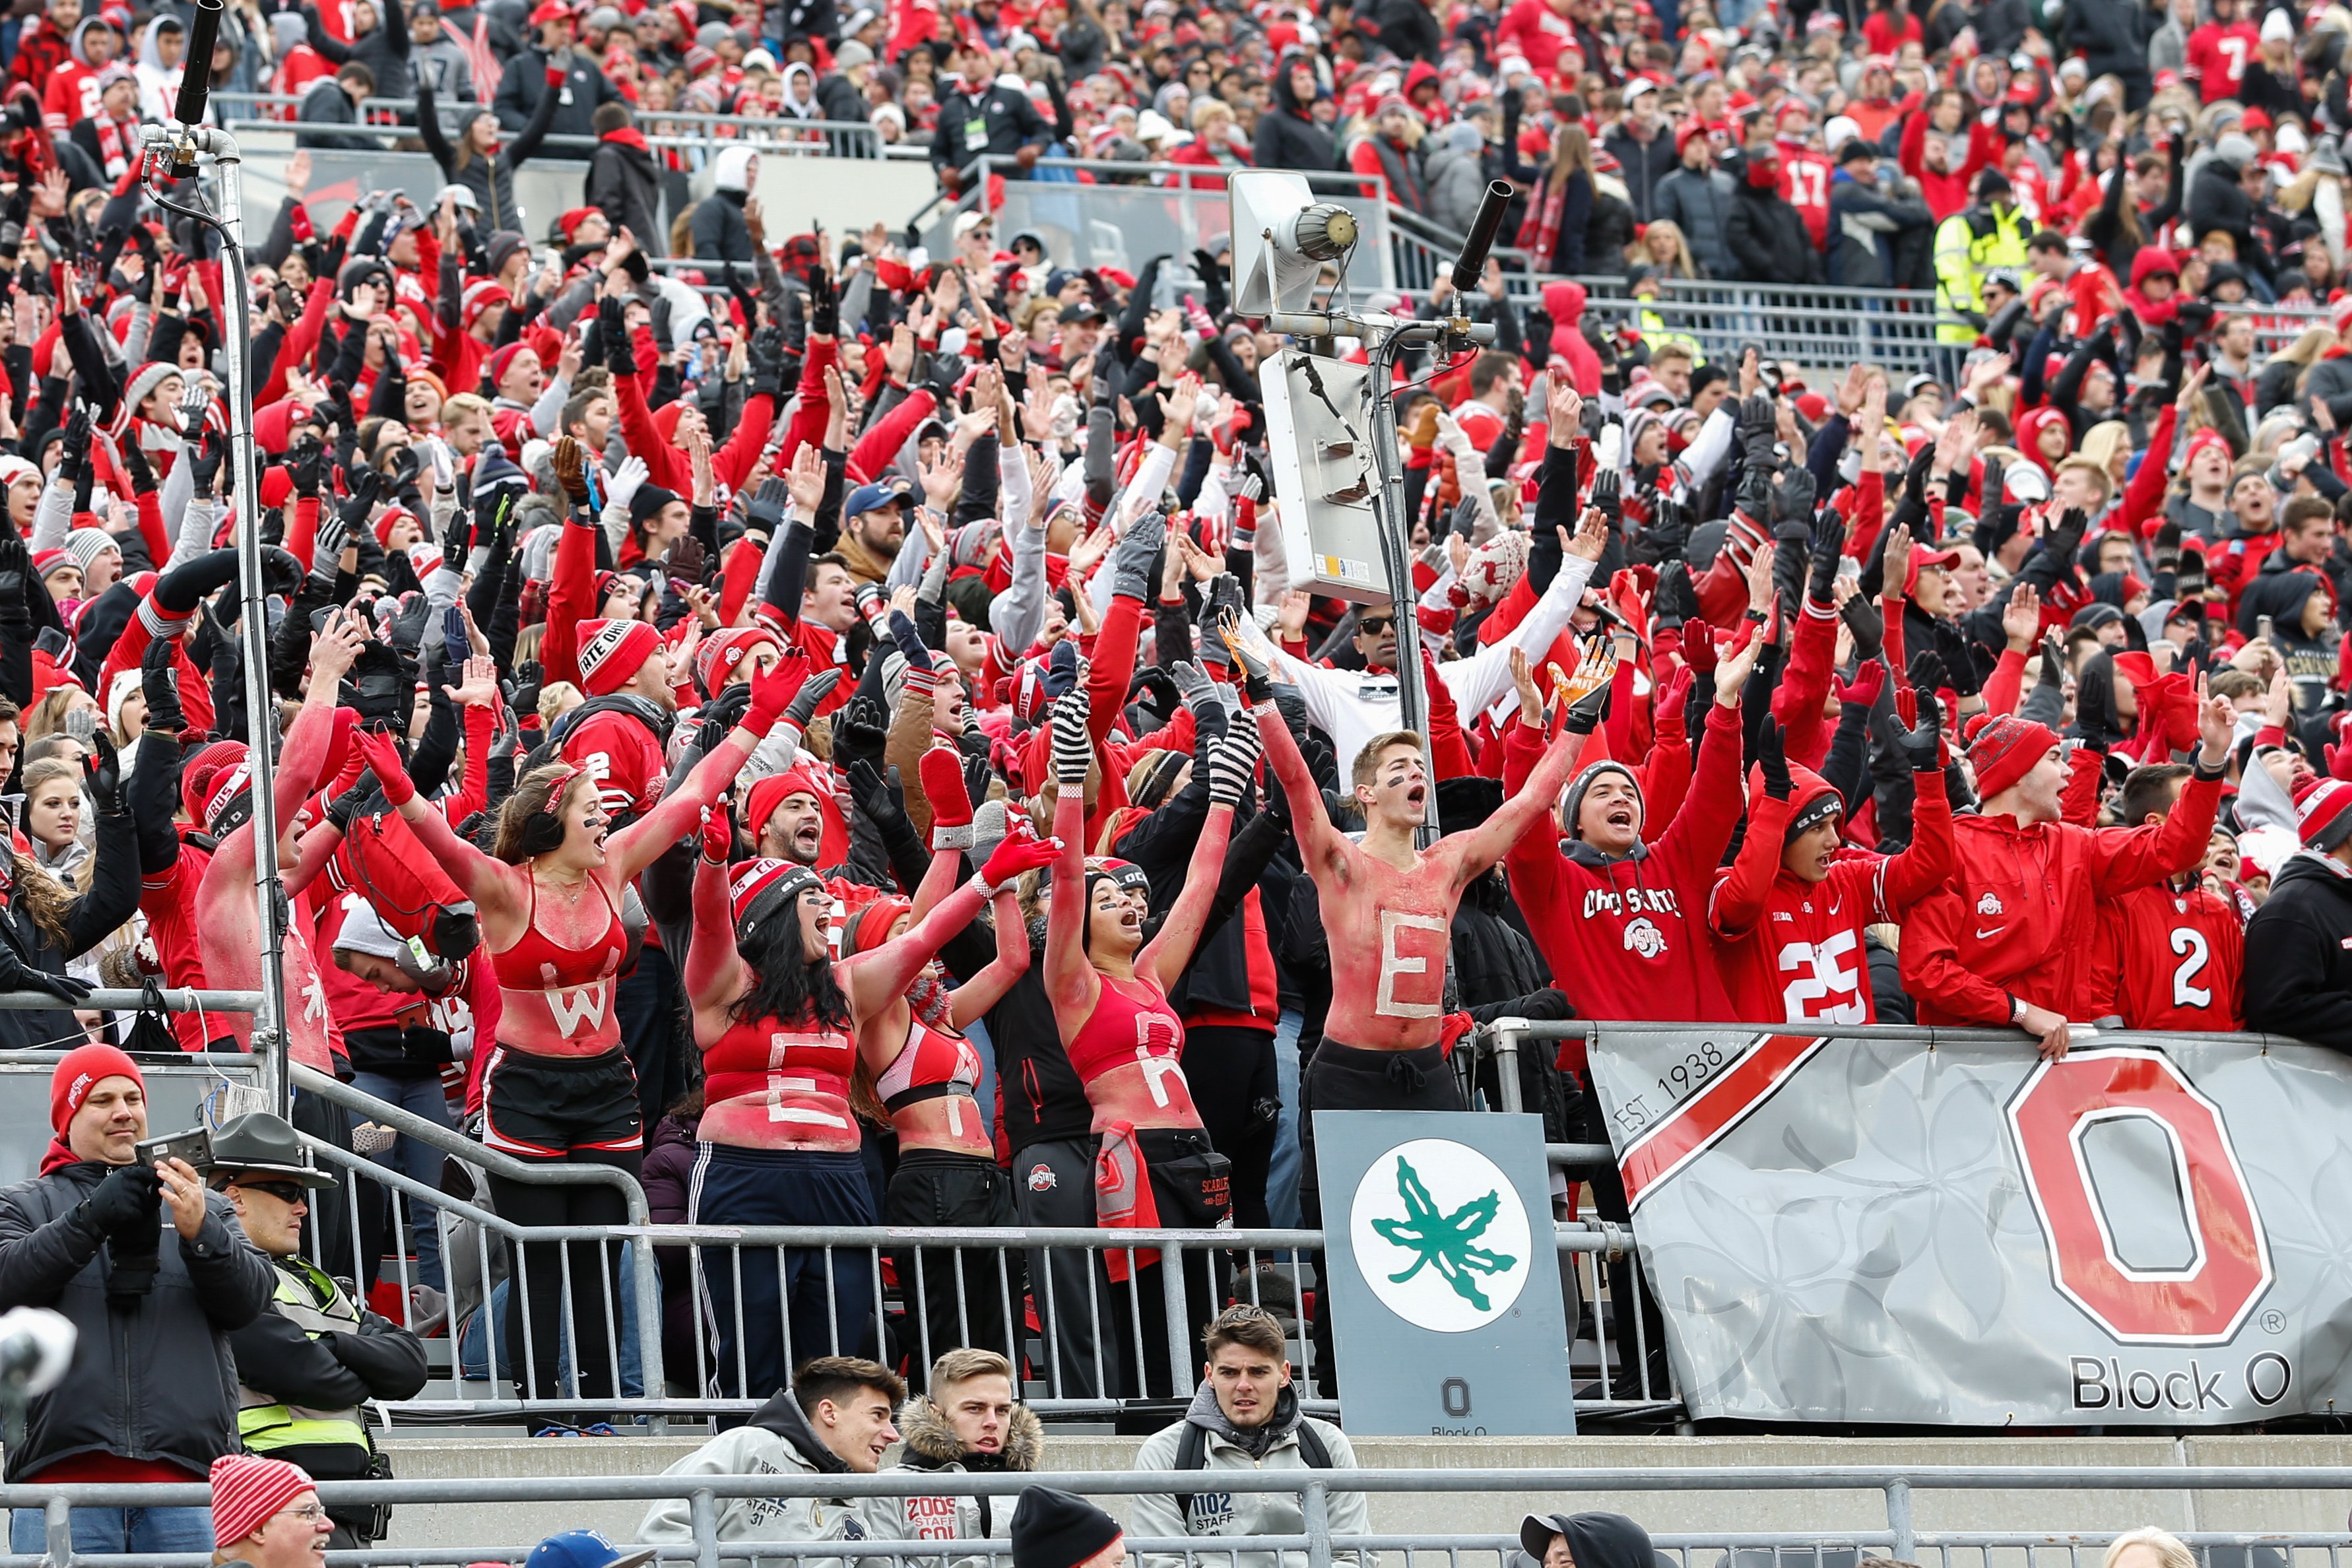 COLLEGE FOOTBALL: NOV 11 Michigan State at Ohio State